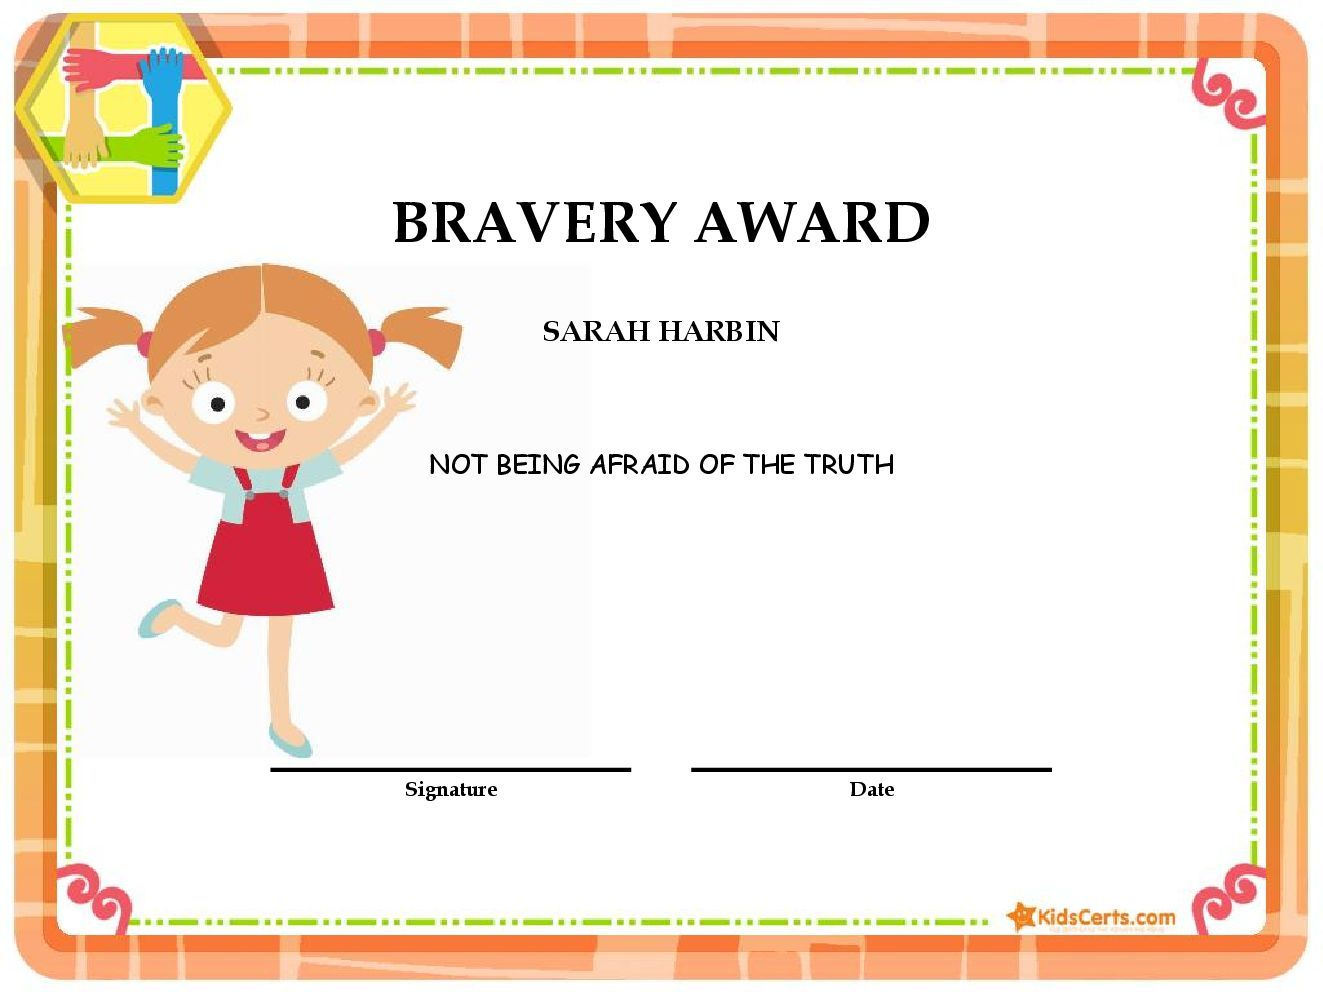 Bravery award baby pinterest free create your very own award personalized printable award certificates for children go from zero to print in under 3 minutes yadclub Gallery